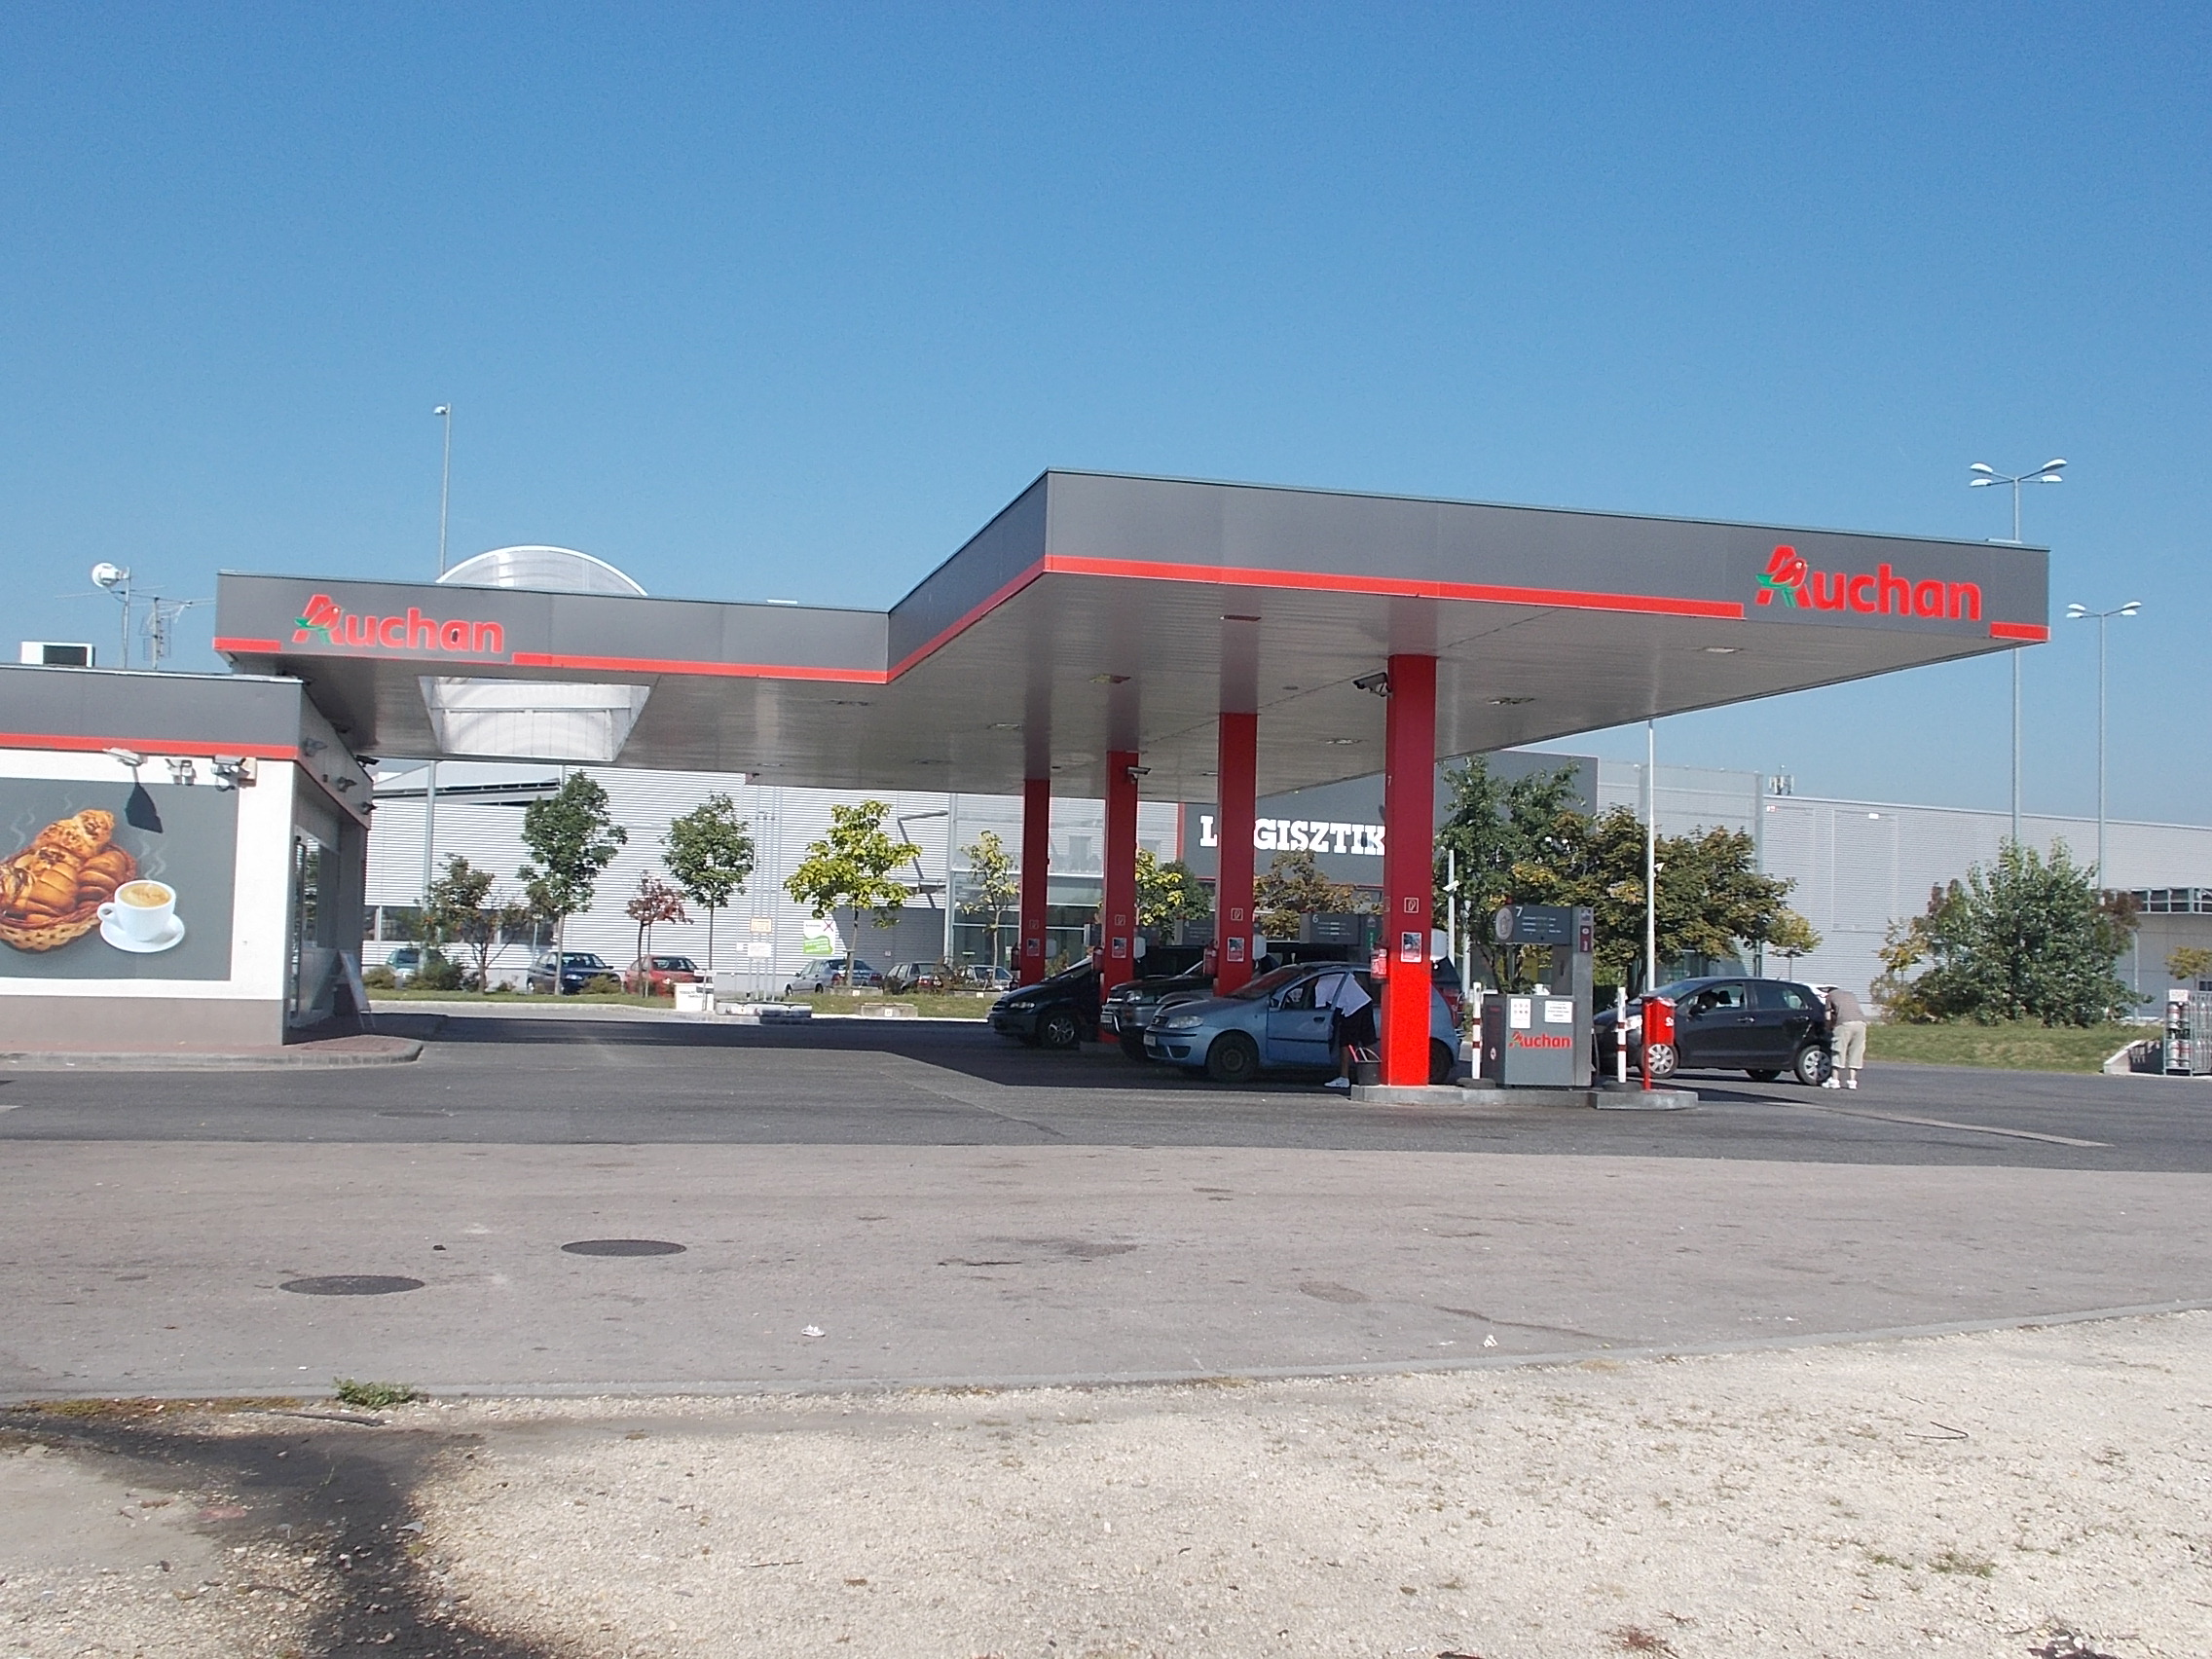 Fileauchan Petrol Station In Csepel Rózsadomb 2016